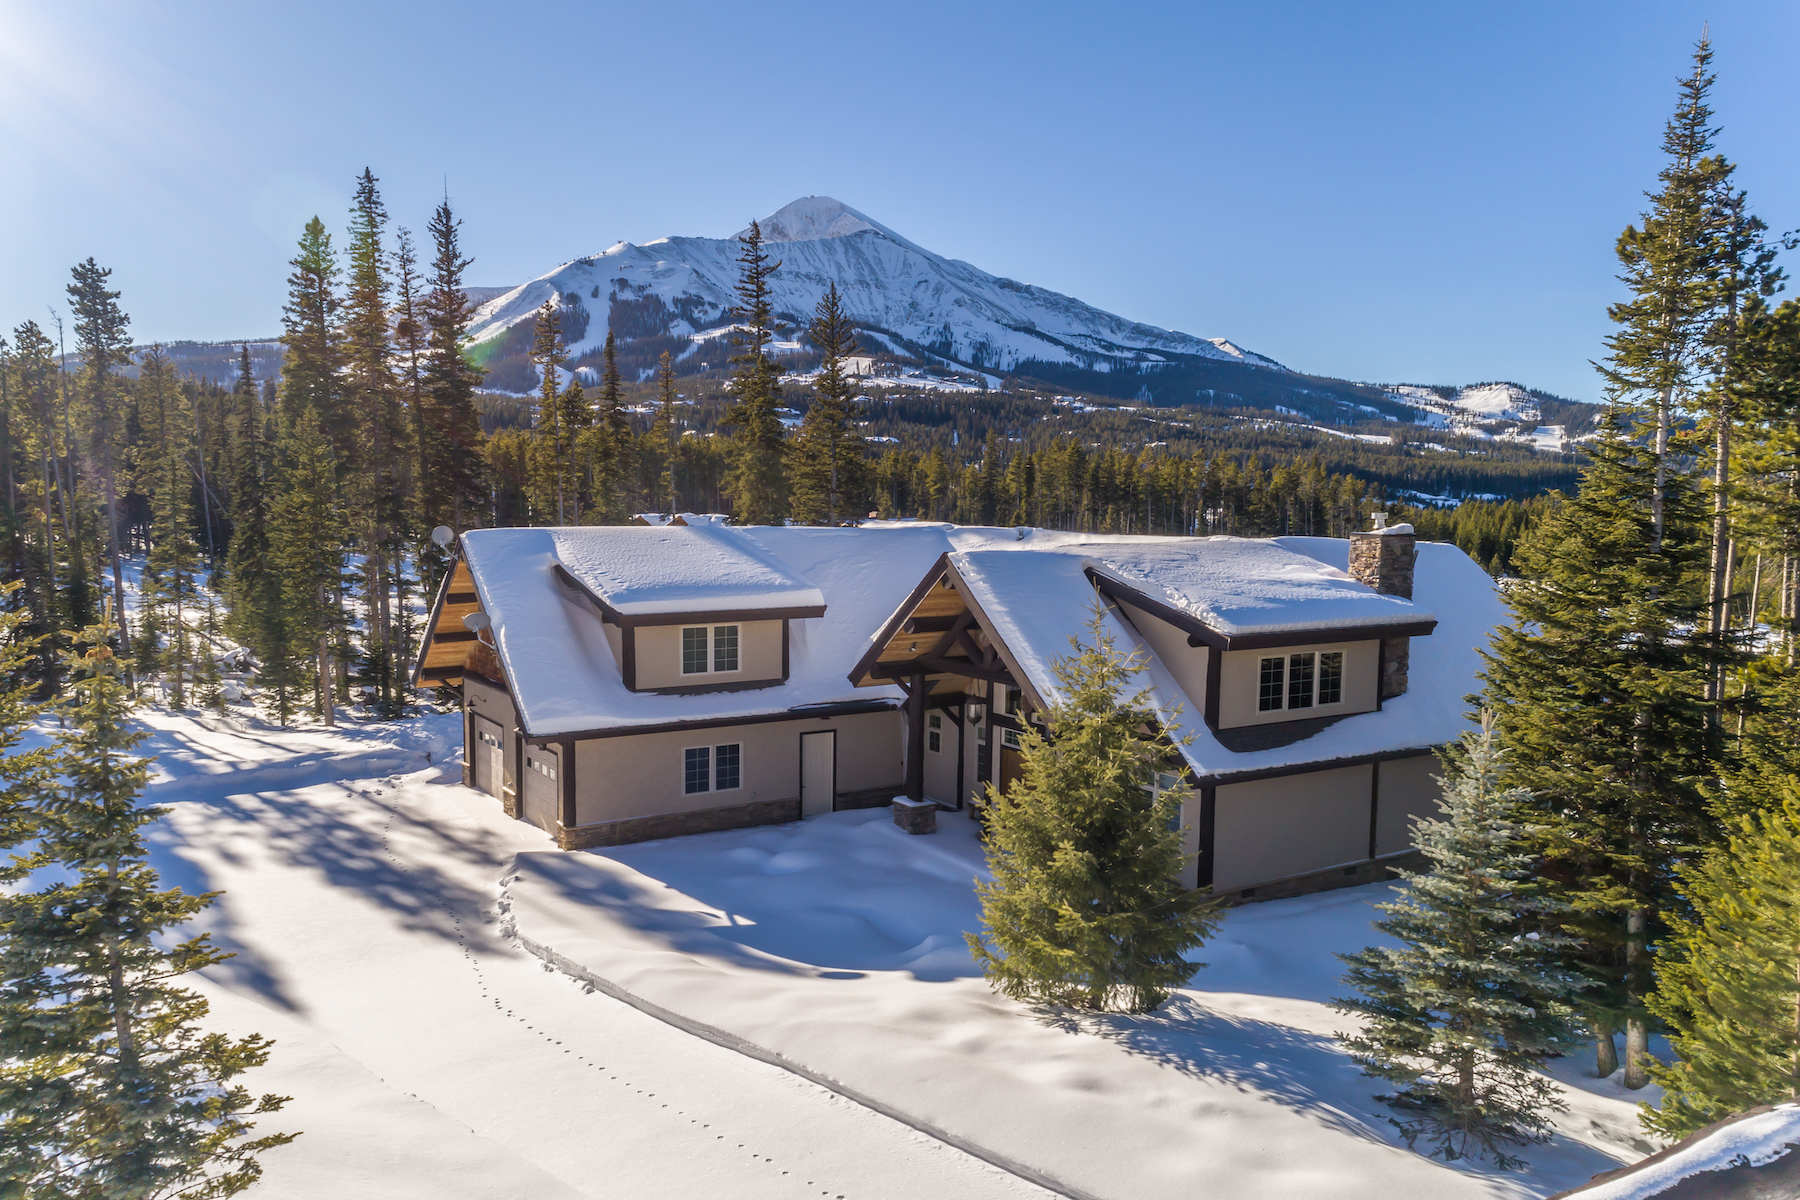 Single Family Home for Active at Custom Home in Ulerys Lakes of Moonlight 22 Ulerys Lakes Road Big Sky, Montana 59716 United States